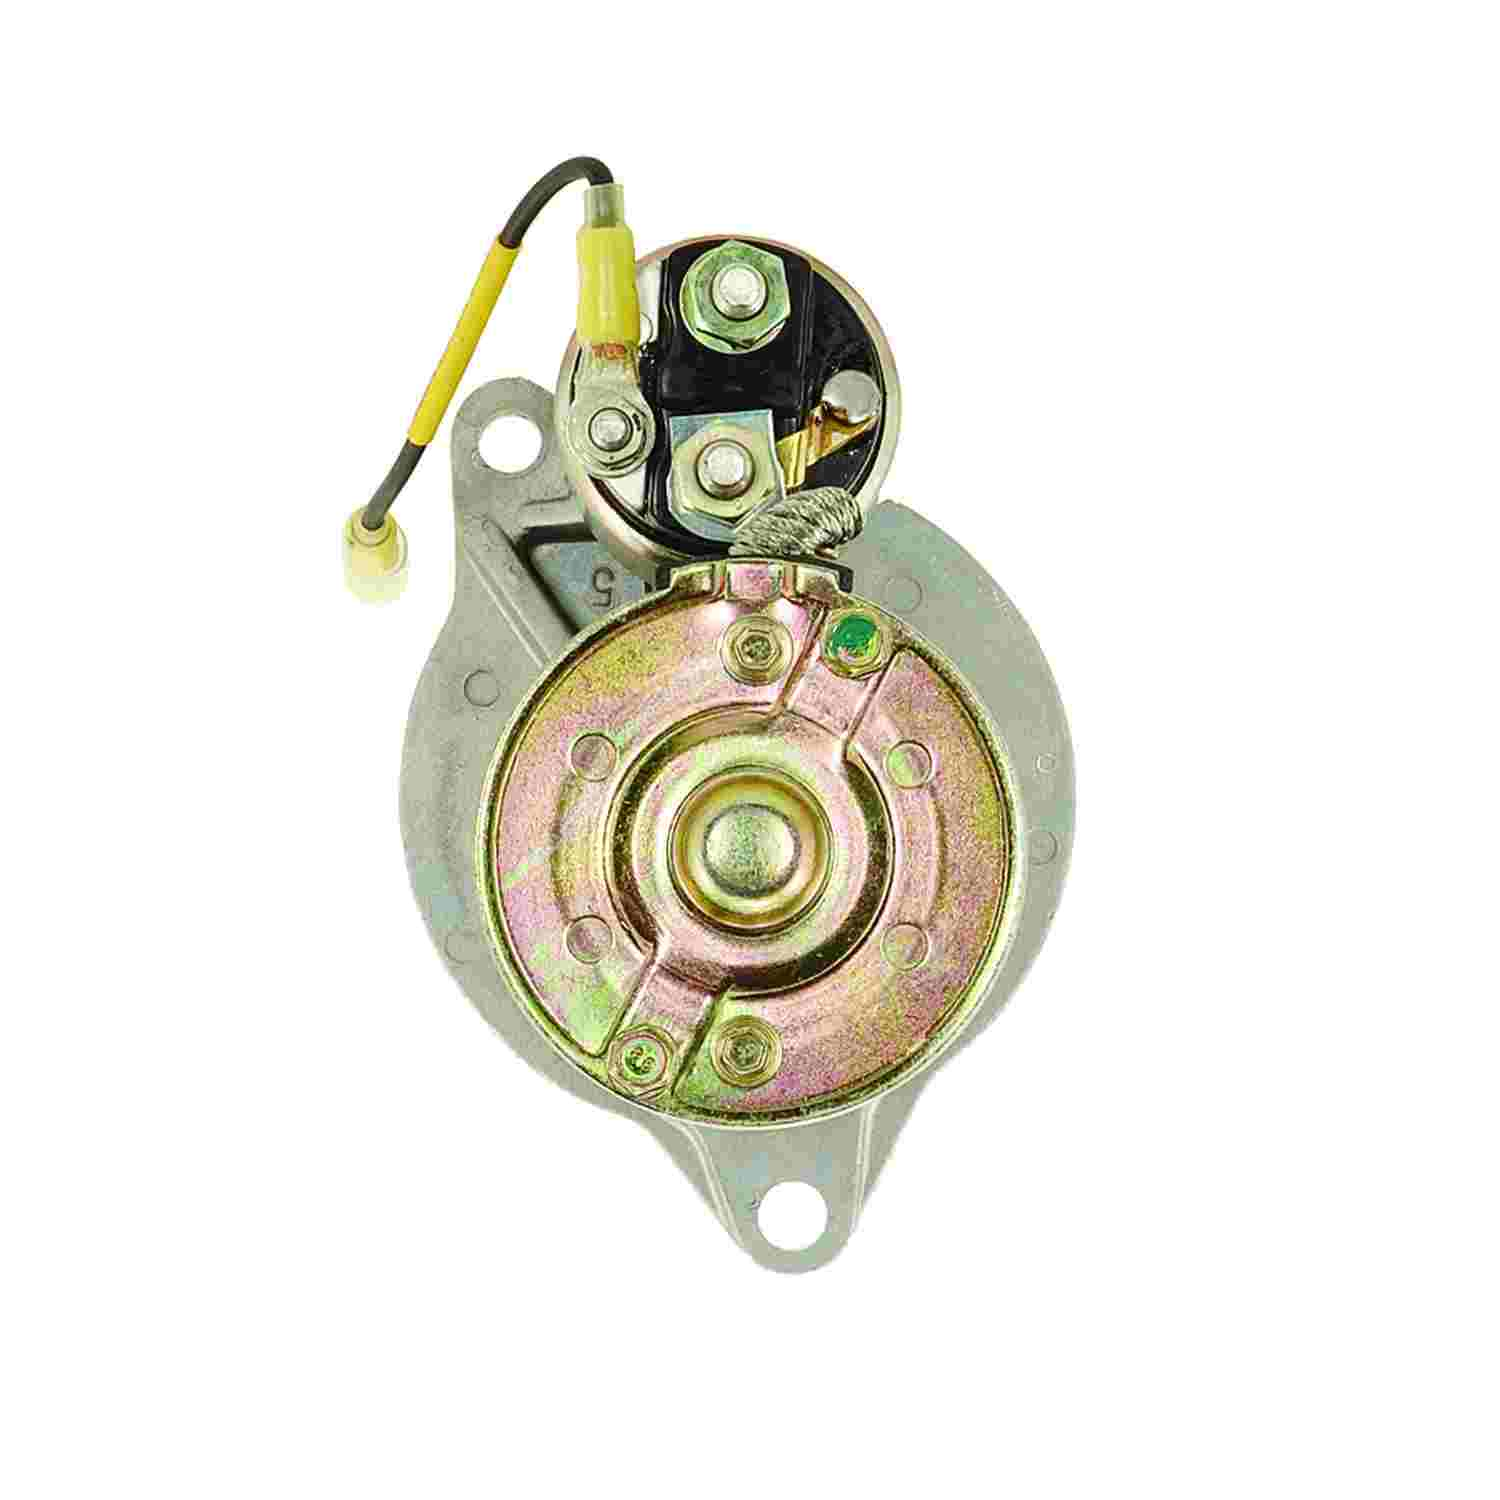 ACDELCO GOLD/PROFESSIONAL CANADA - Starter Motor - DCH 337-1037